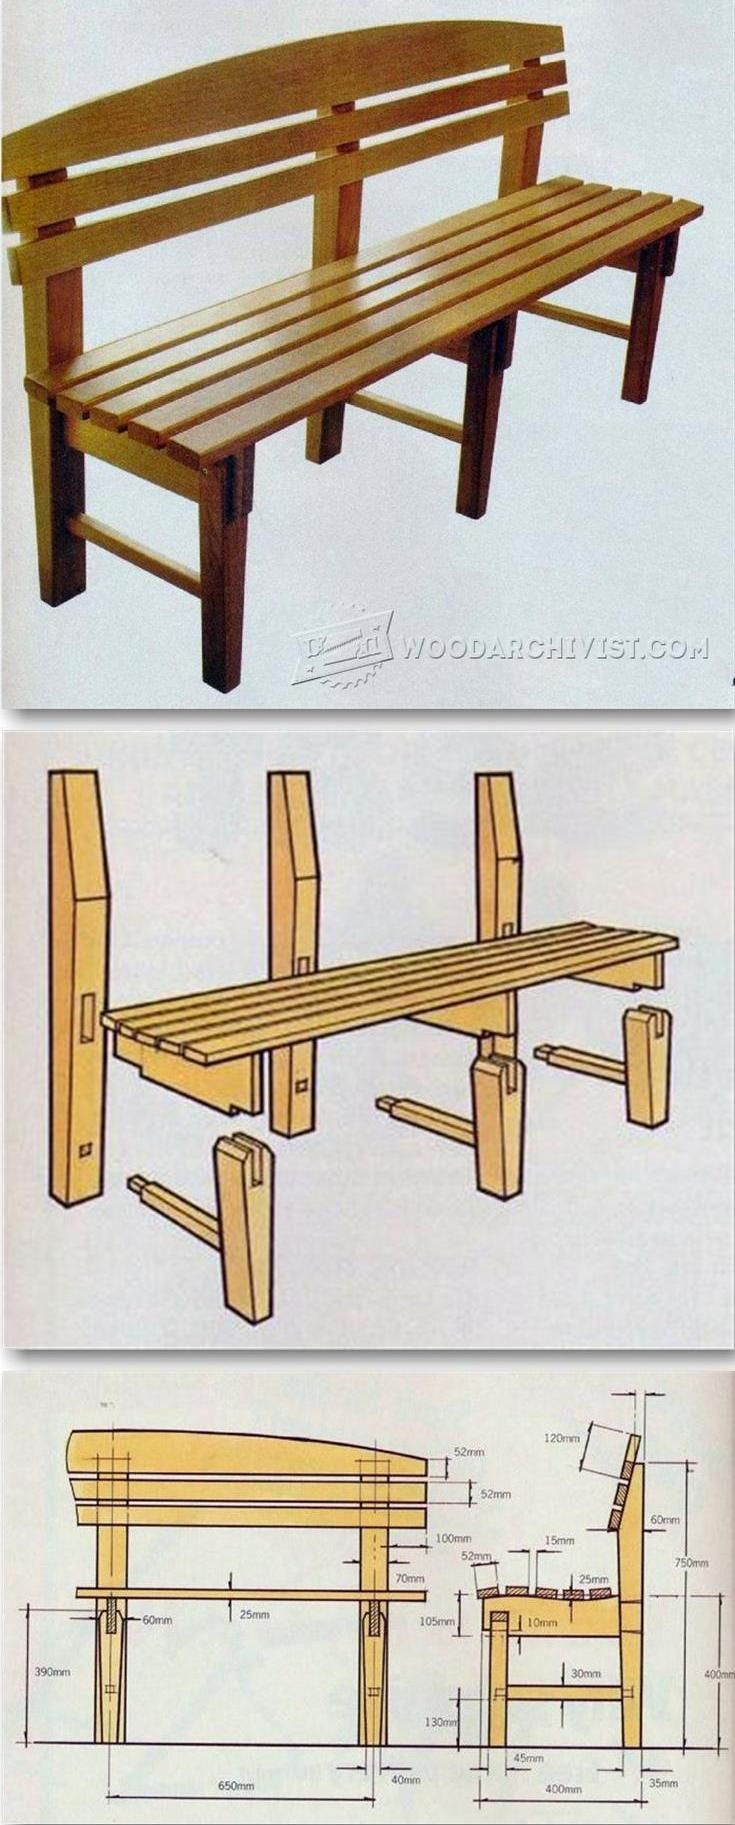 Outdoor wood table plans - Bench Seat Plans Outdoor Furniture Plans Projects Woodarchivist Com